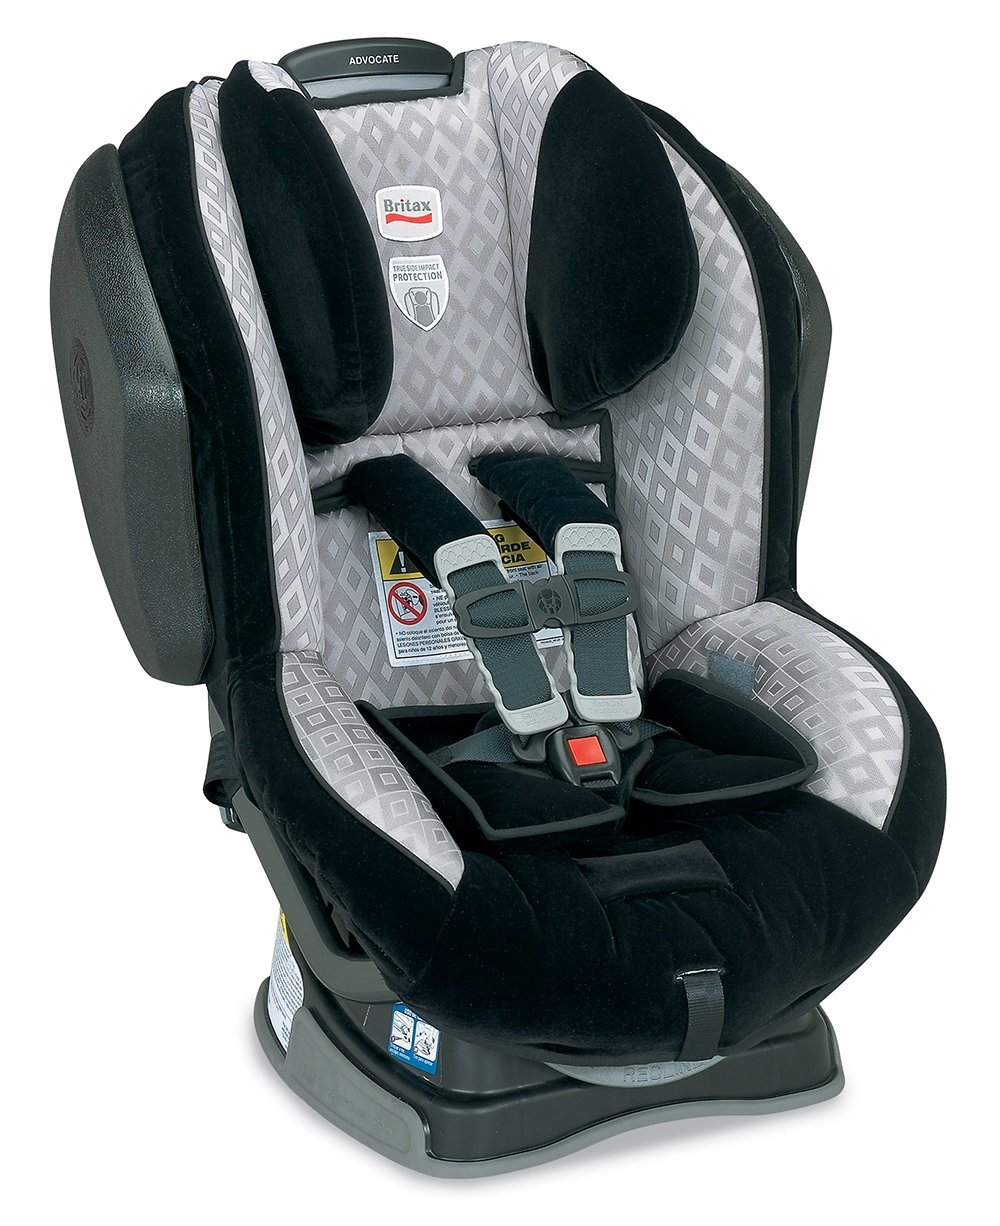 britax boulevard car seat manual canada cars image 2018. Black Bedroom Furniture Sets. Home Design Ideas